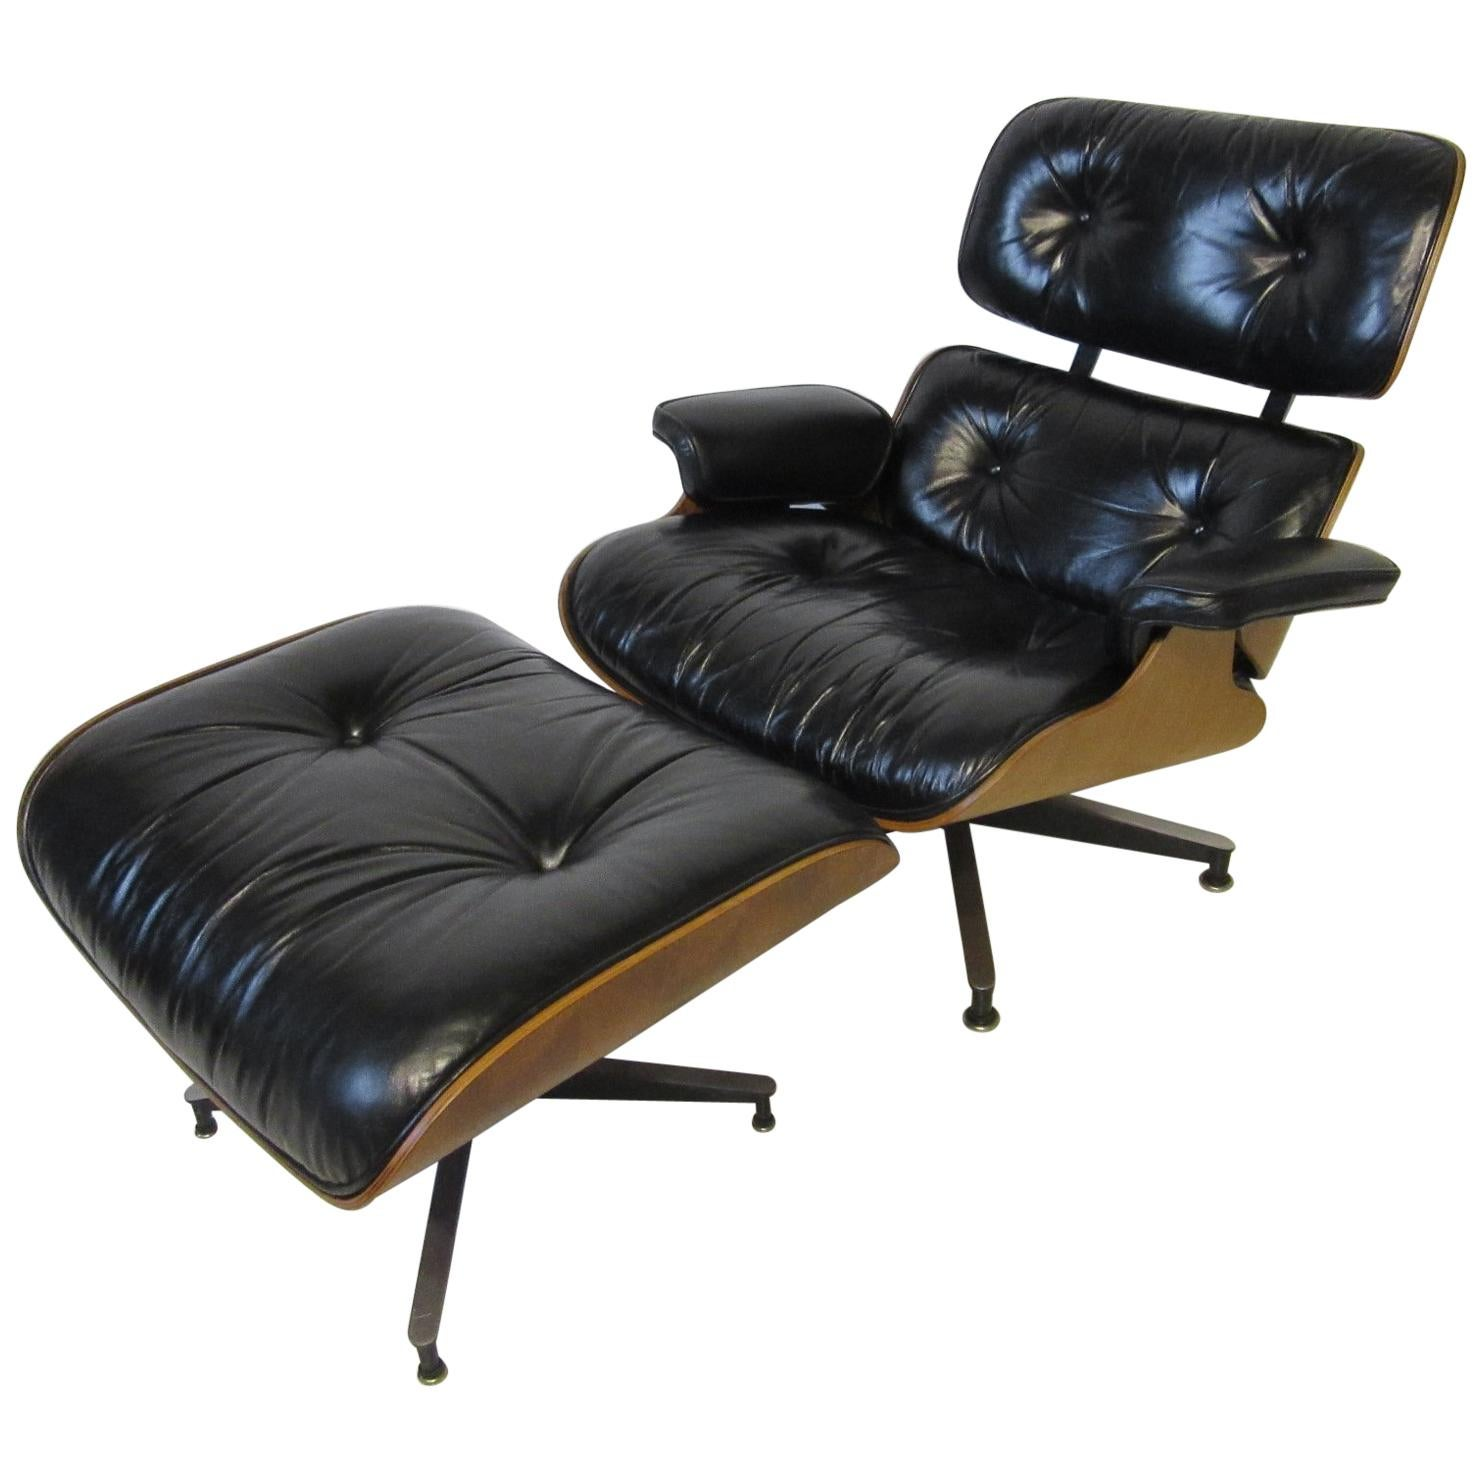 eames lounge chair for sale helinox multicam perfect rosewood and ivory herman miller 670 with ottoman by